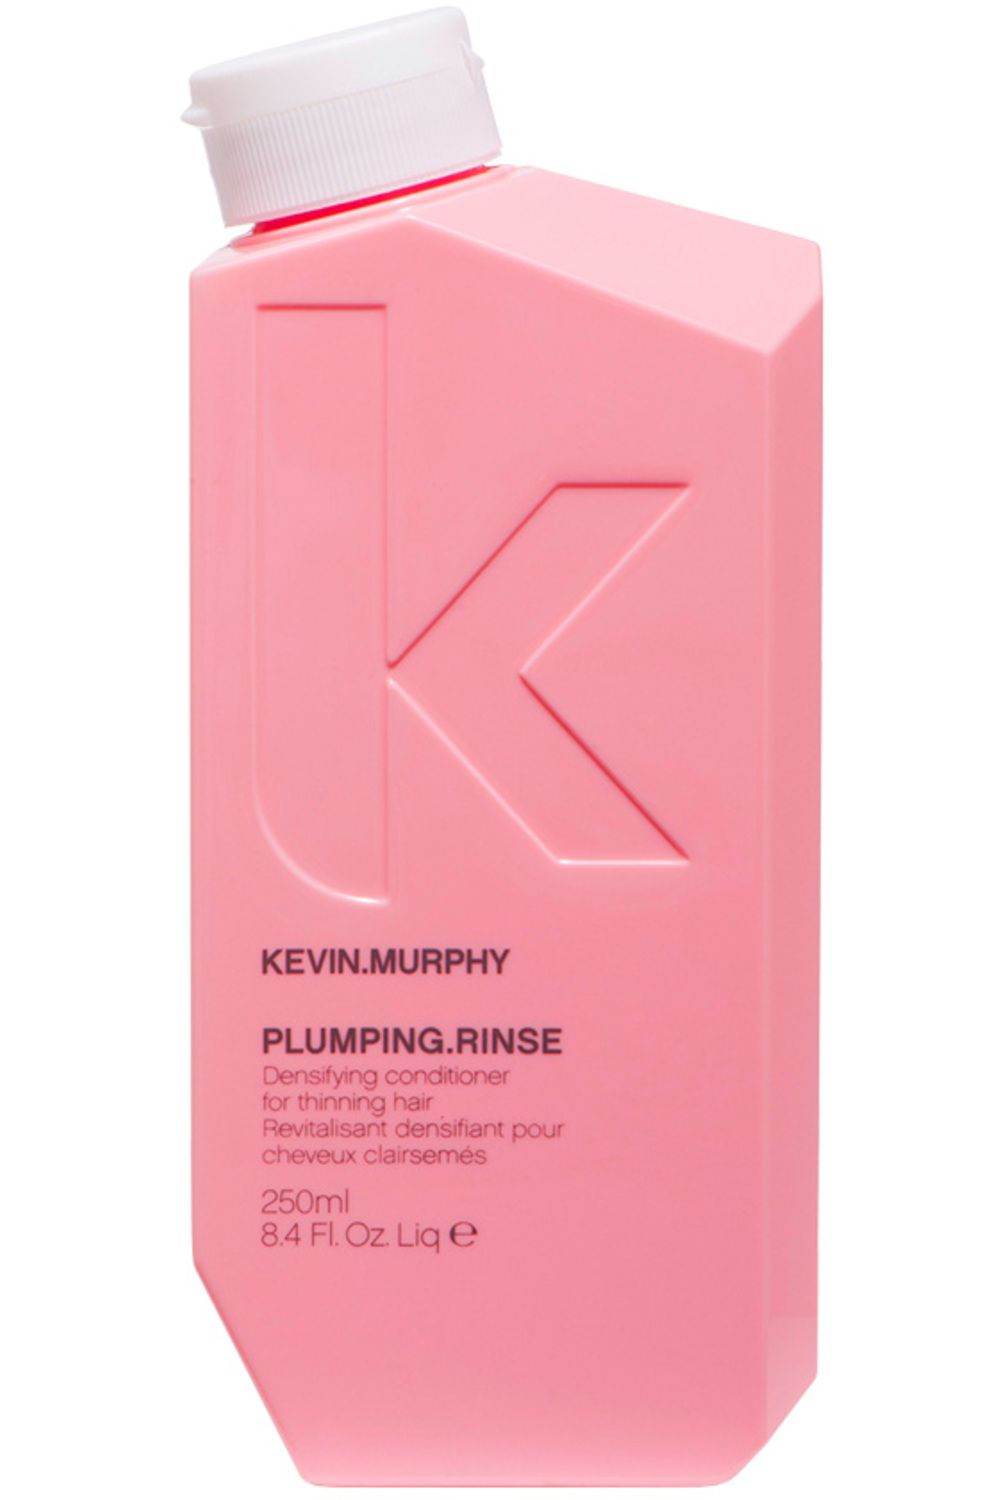 Blissim : KEVIN.MURPHY - Après-shampoing revitalisant densifiant PLUMPING.RINSE - Après-shampoing revitalisant densifiant PLUMPING.RINSE